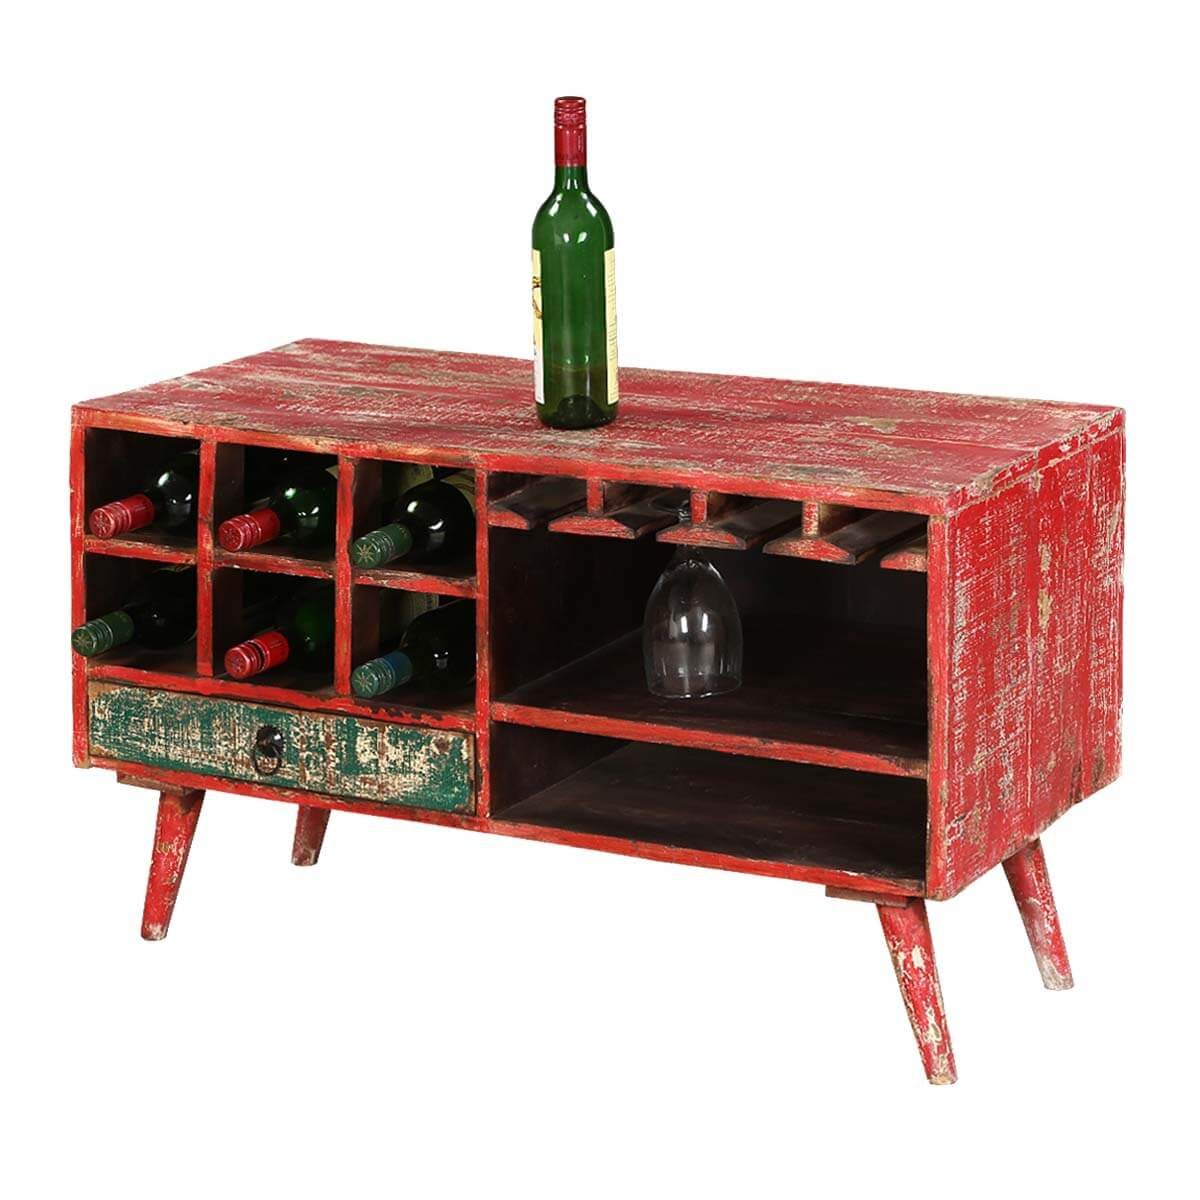 Turquoise Trail 35 Bright Red Open Storage Accent Wine Rack  sc 1 st  Sierra Living Concepts & Turquoise Trail 35